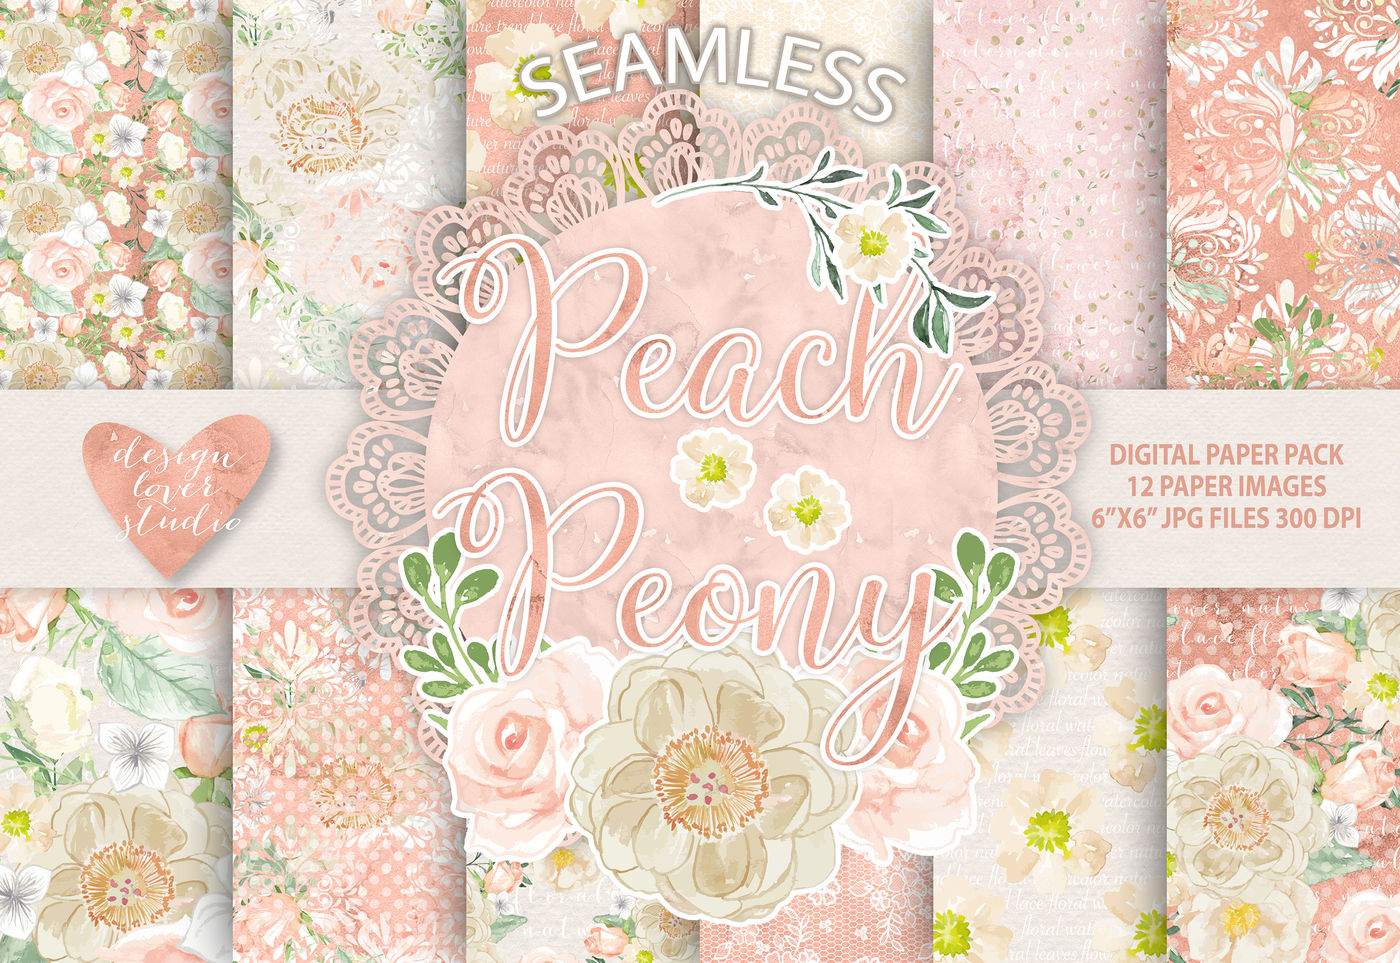 Watercolor Peony Peach Flowers Digital Paper Flower Background